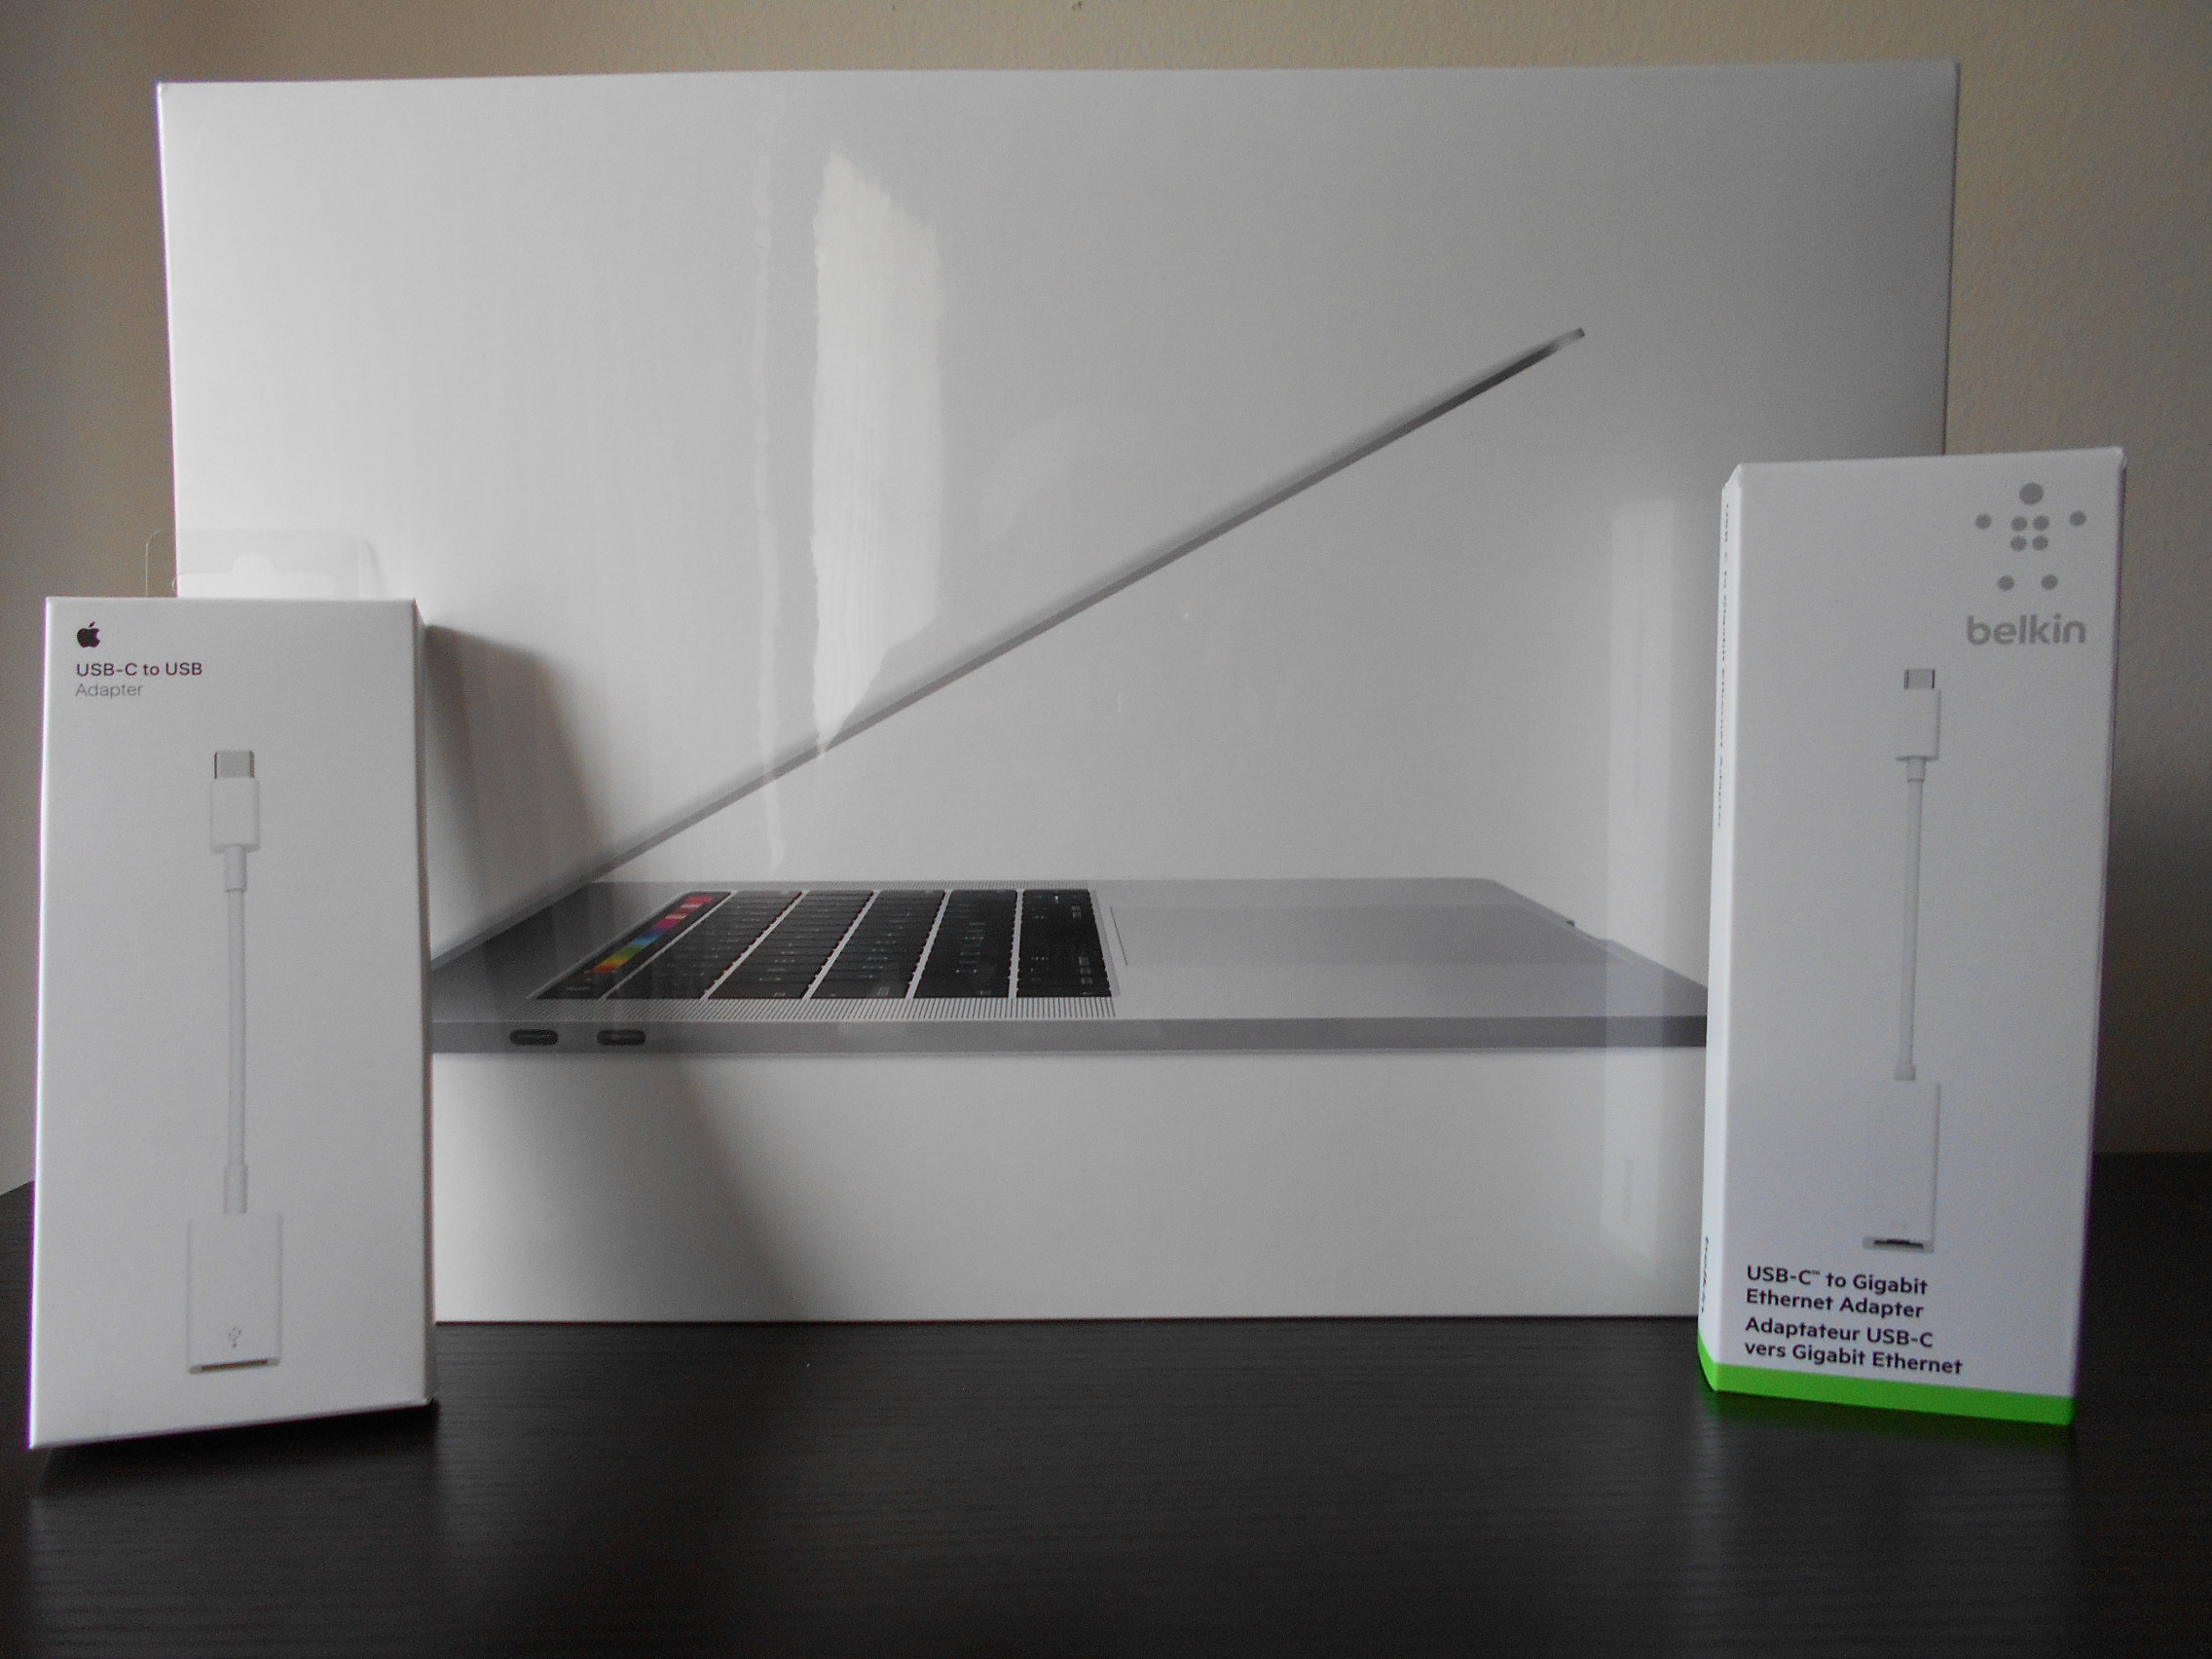 BRAND NEW MacBook Pro (STILL IN ORIGINAL BOX) FOR SALE!